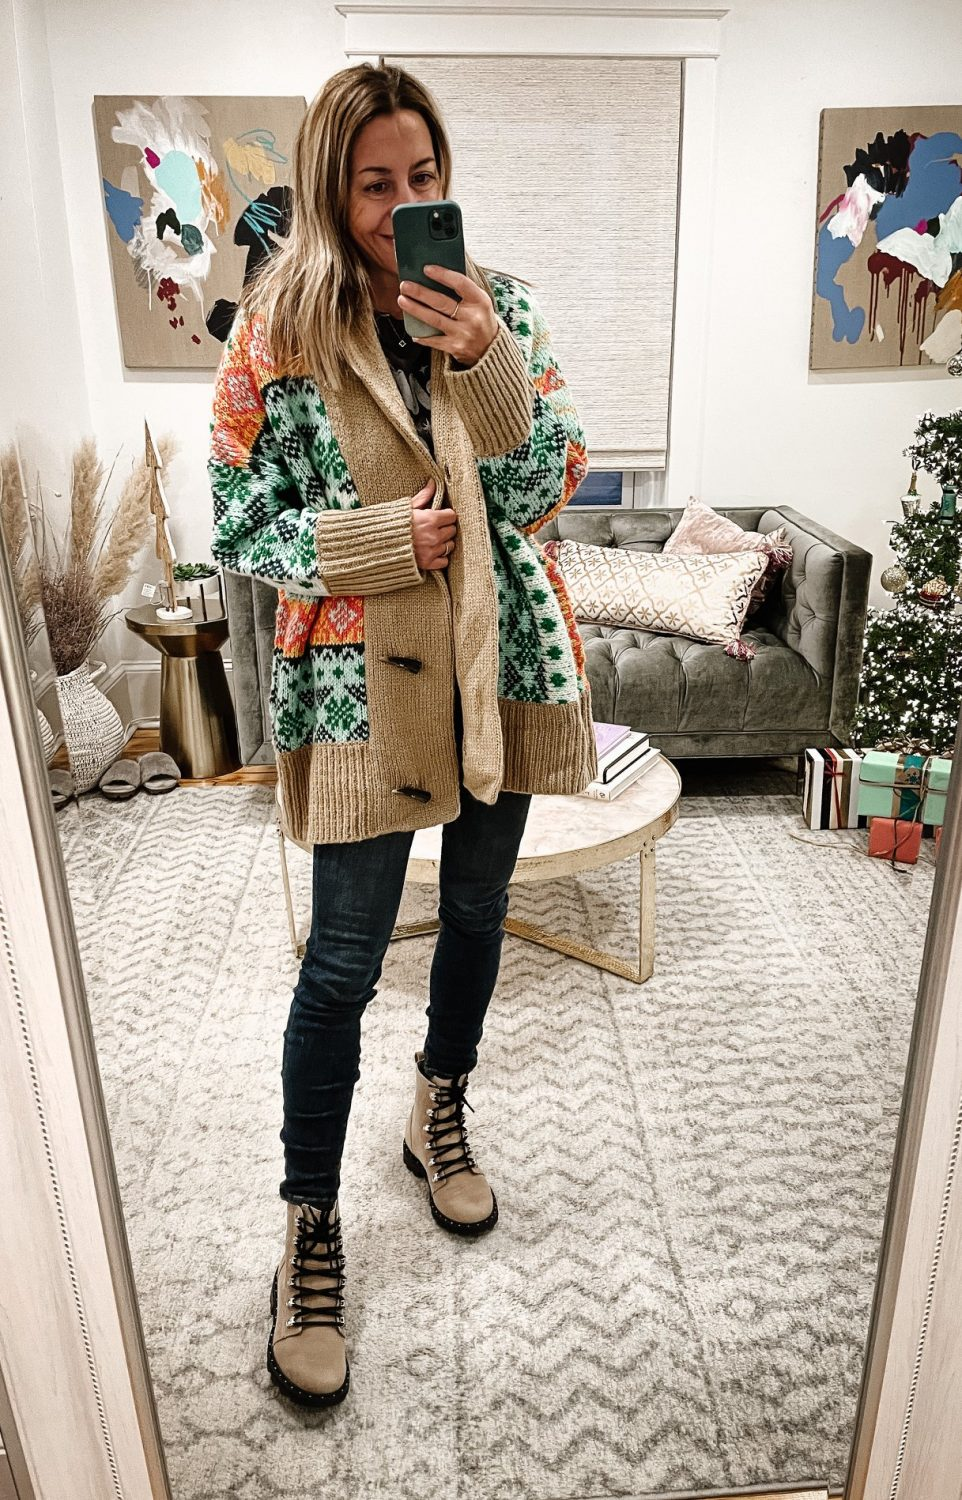 The Motherchic casual winter outfit